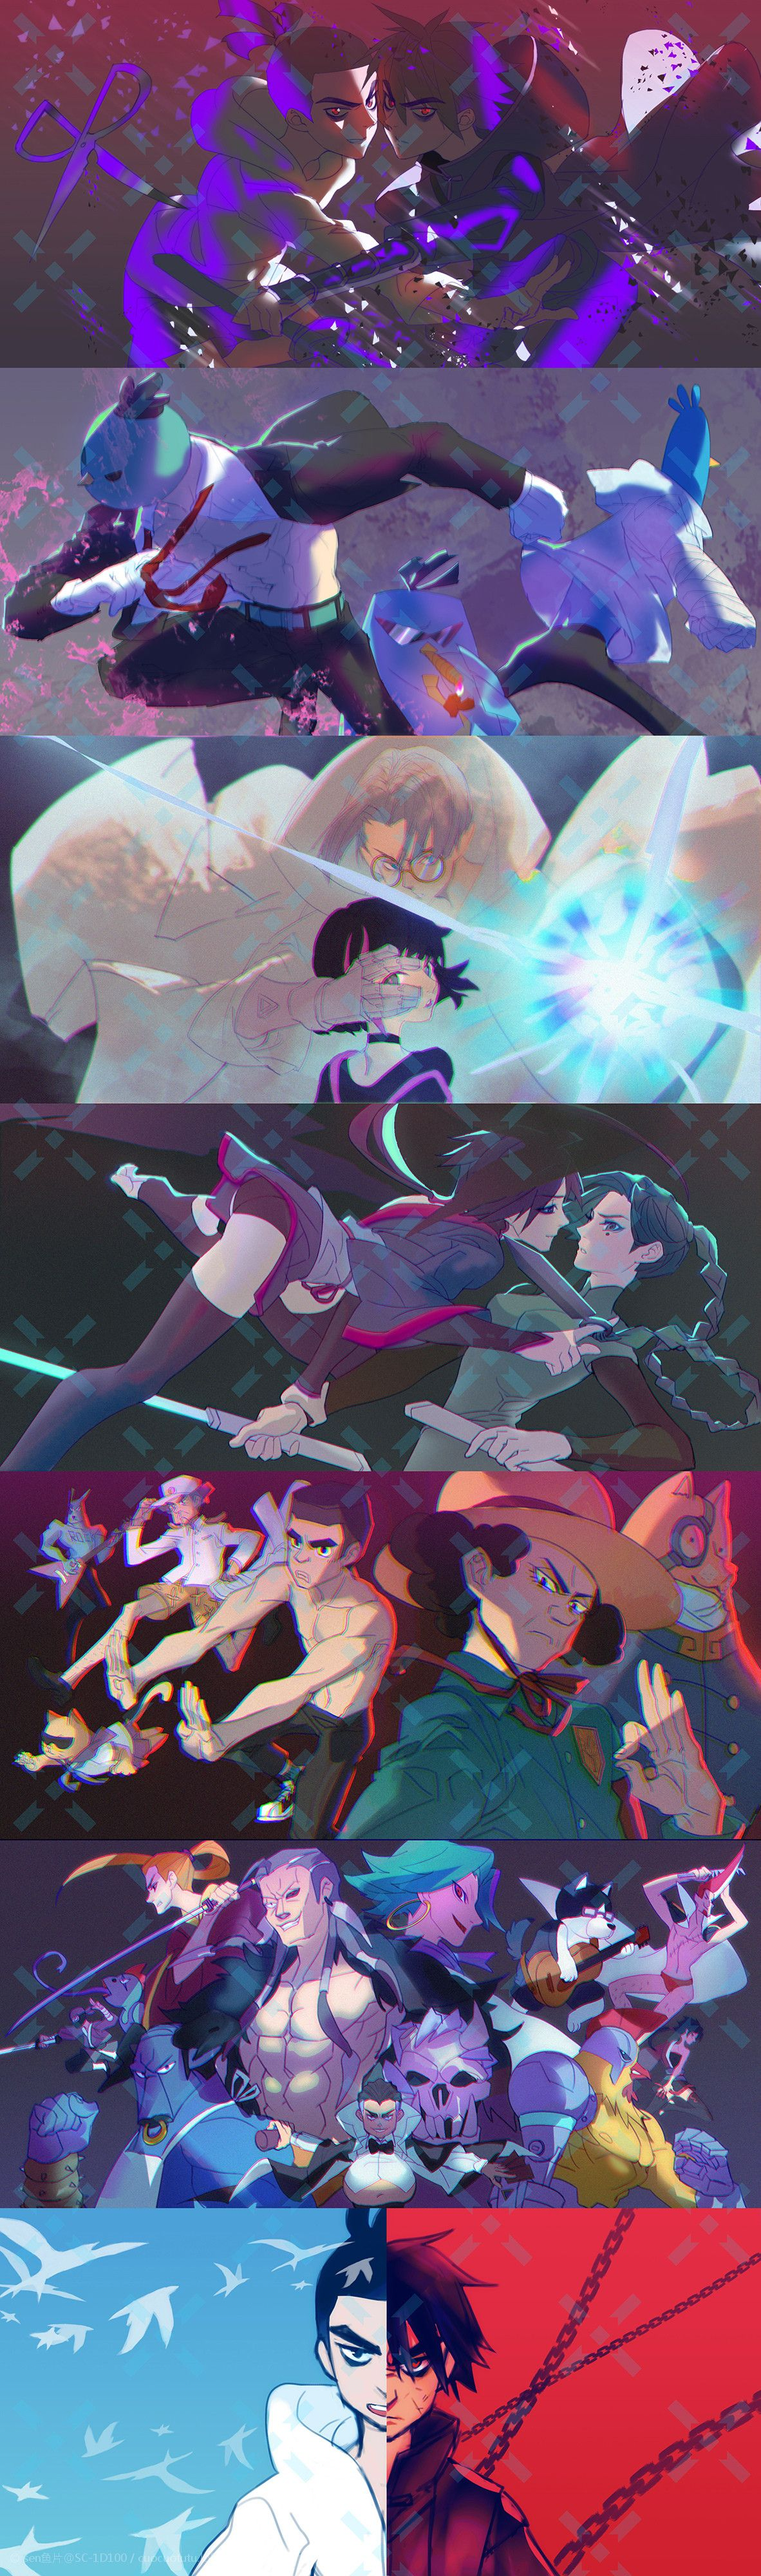 Pin by nia on 刺客伍六七 in 2020 Anime lovers, Anime, Cool